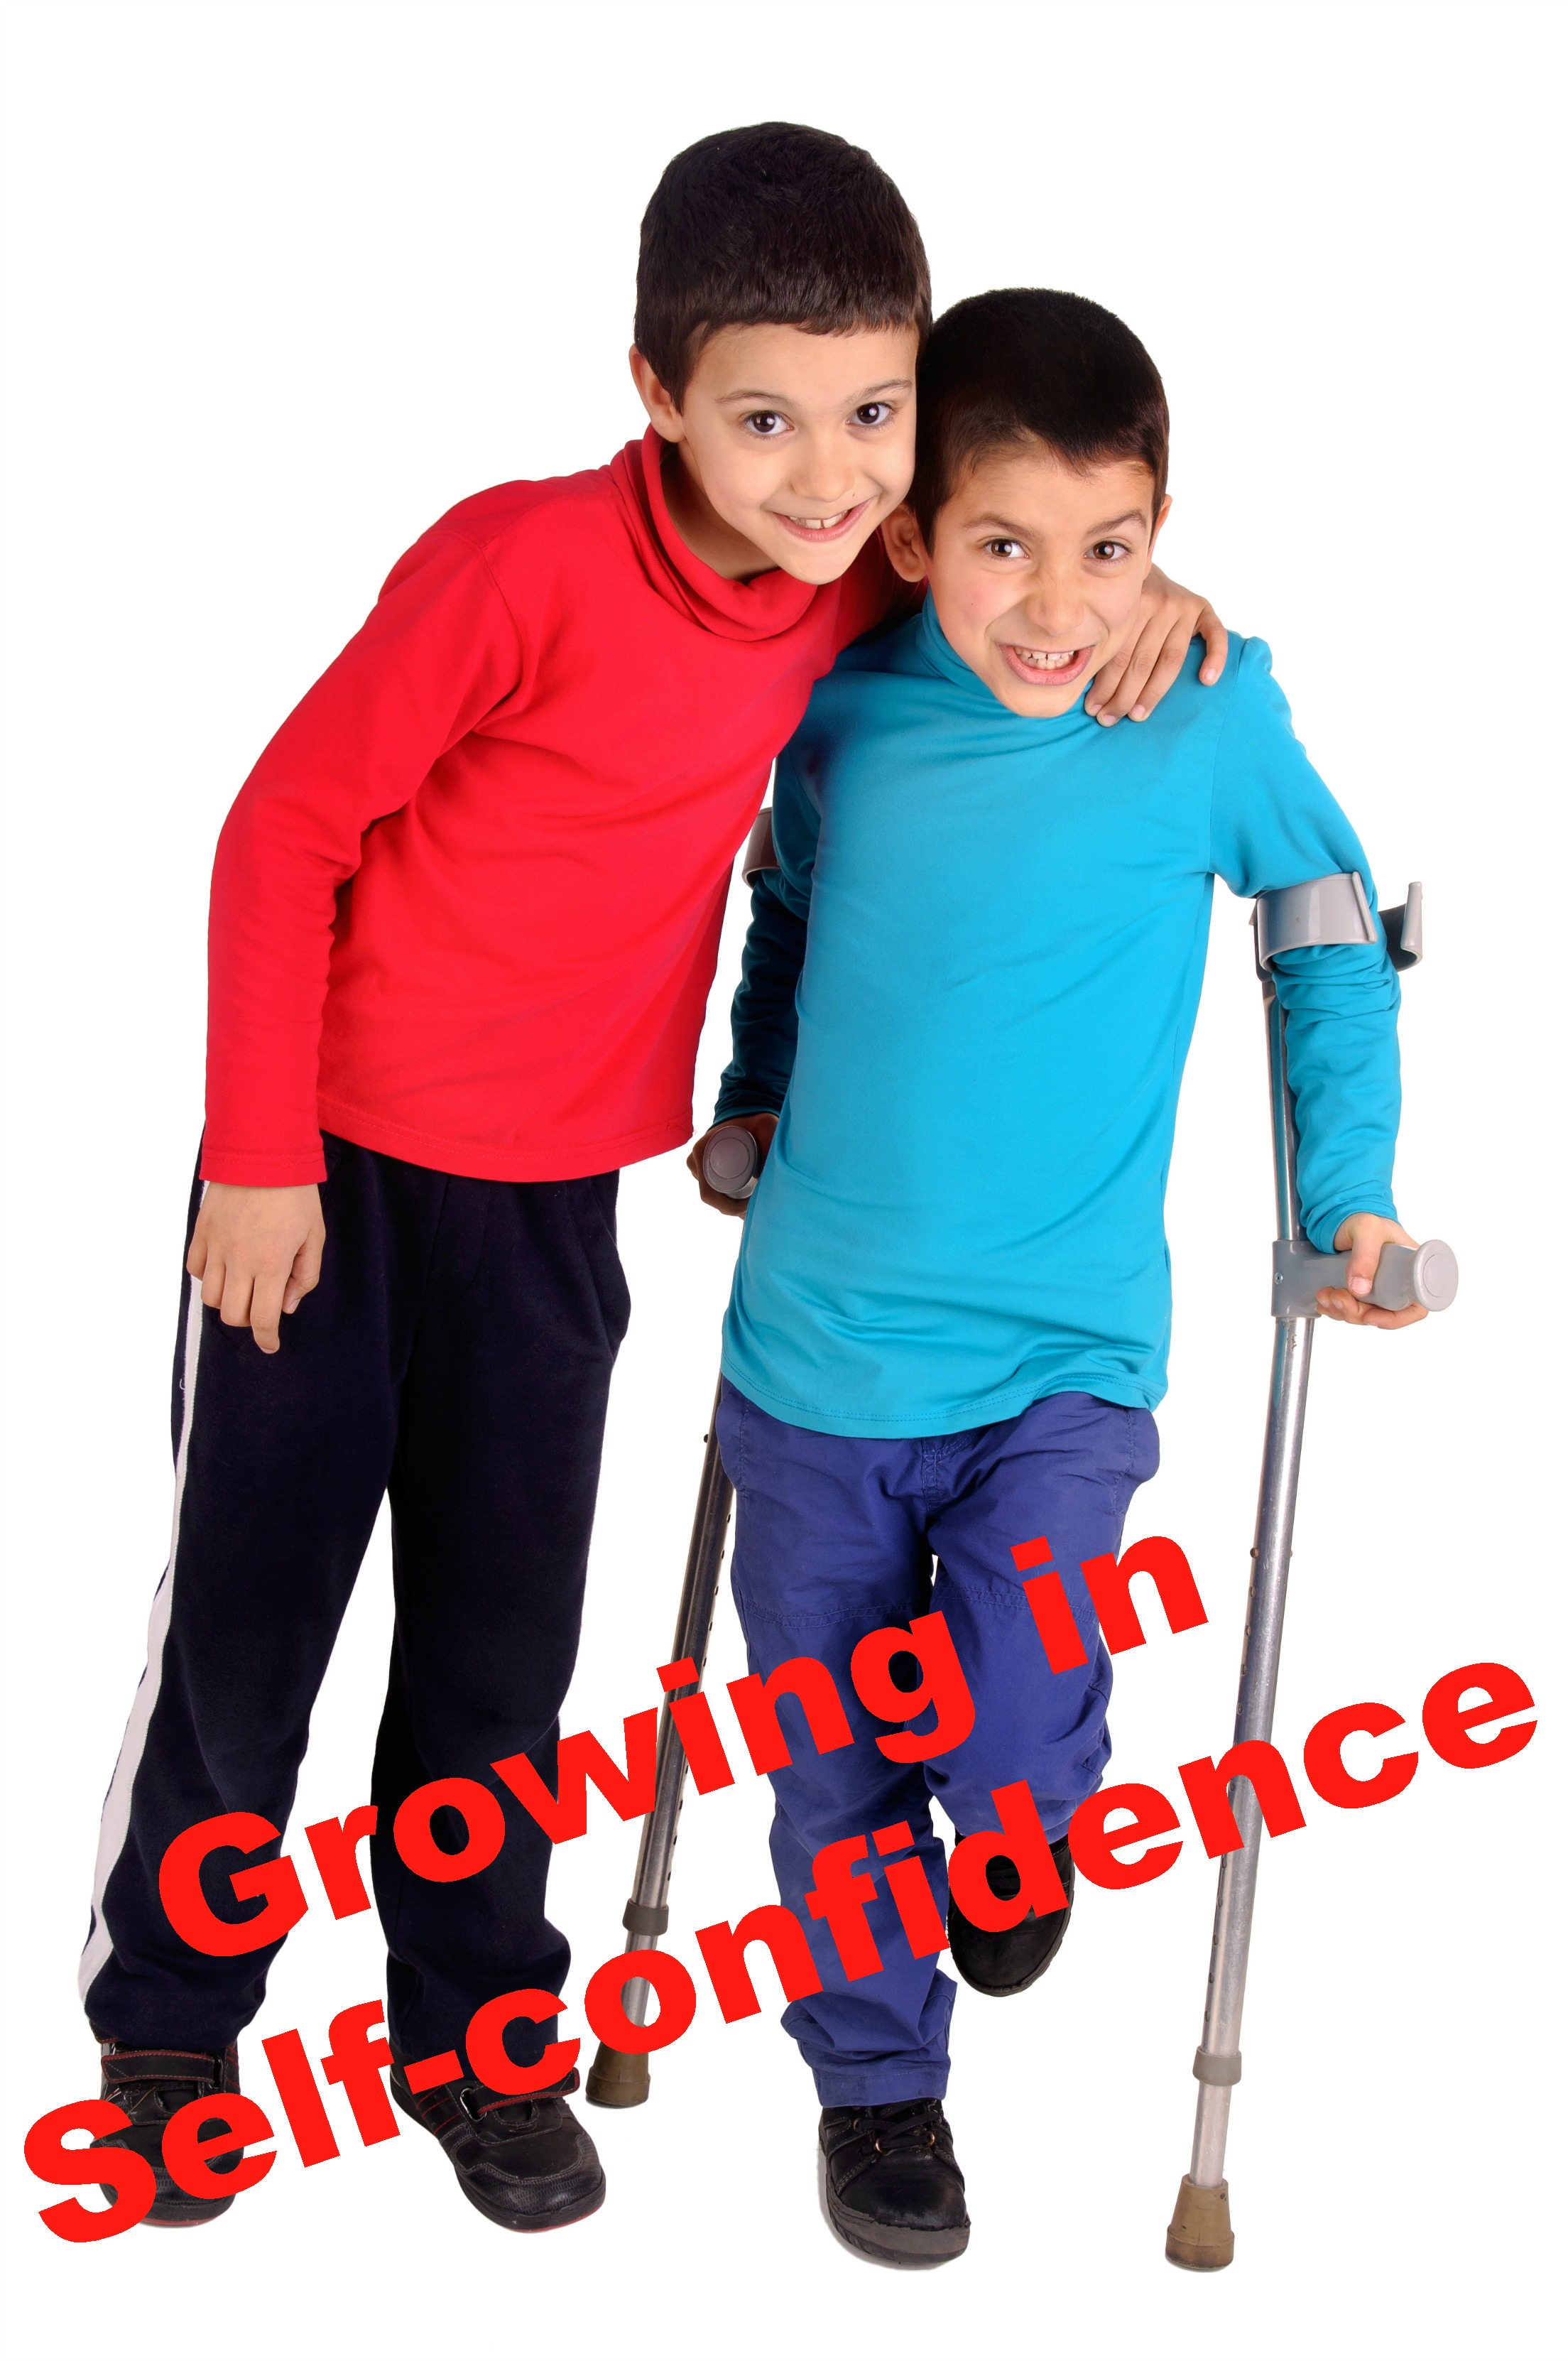 Two elemetary-school boys (one with crutches) supporting each other as they both stand. Caption: